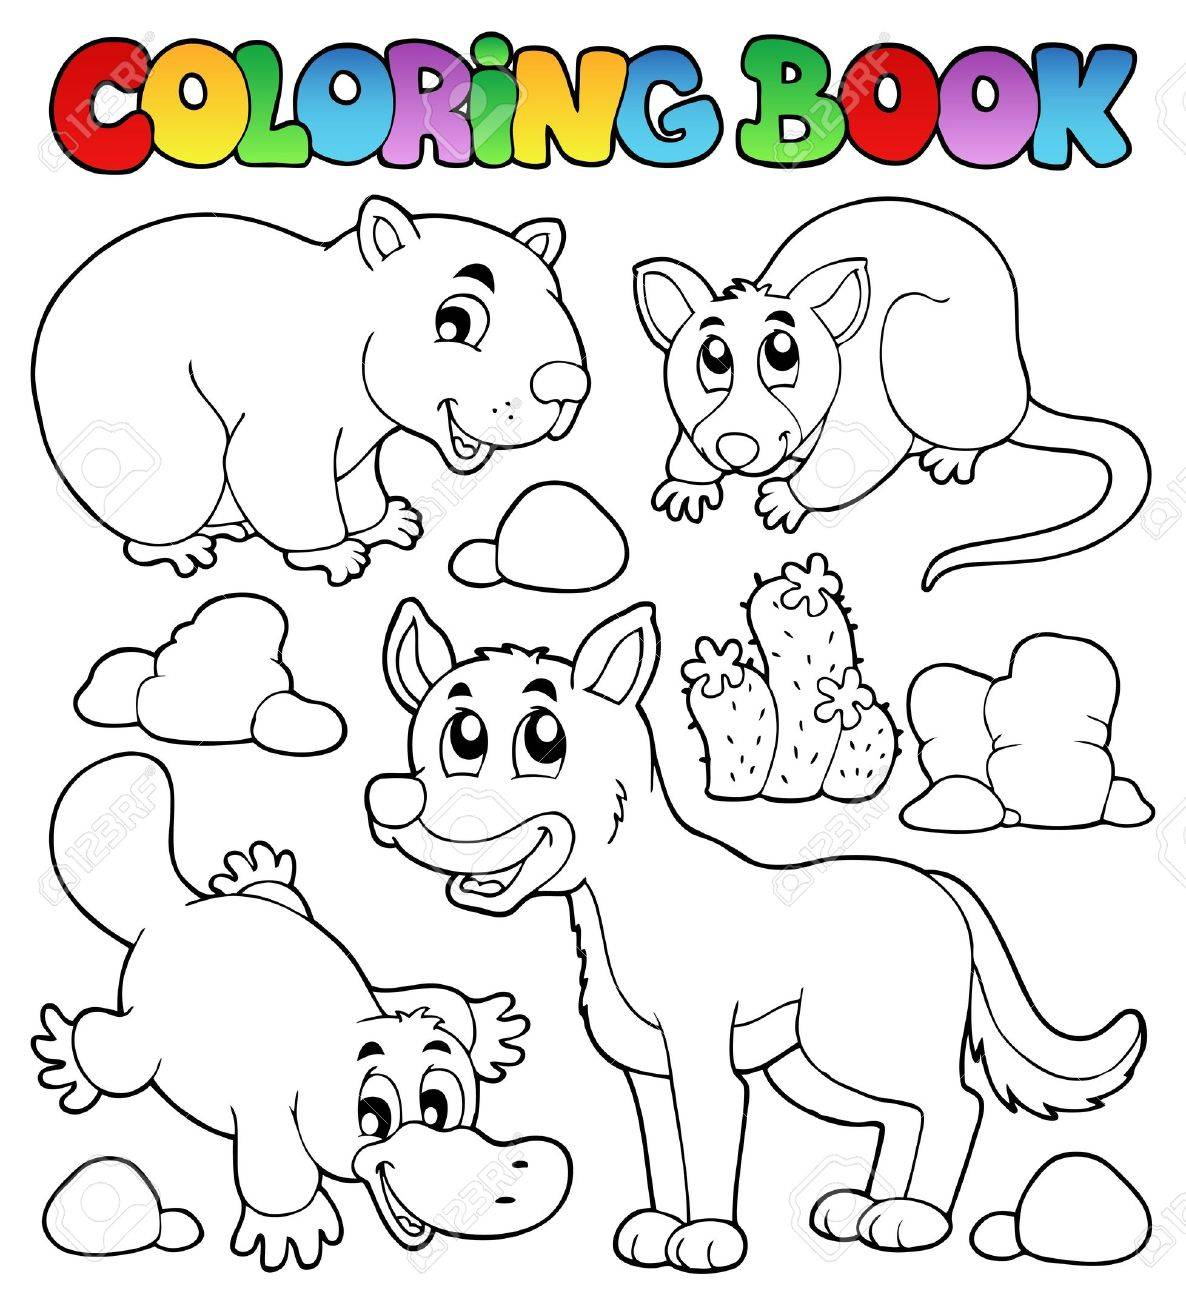 Coloring book Australian fauna 1 - vector illustration Stock Vector - 16503874